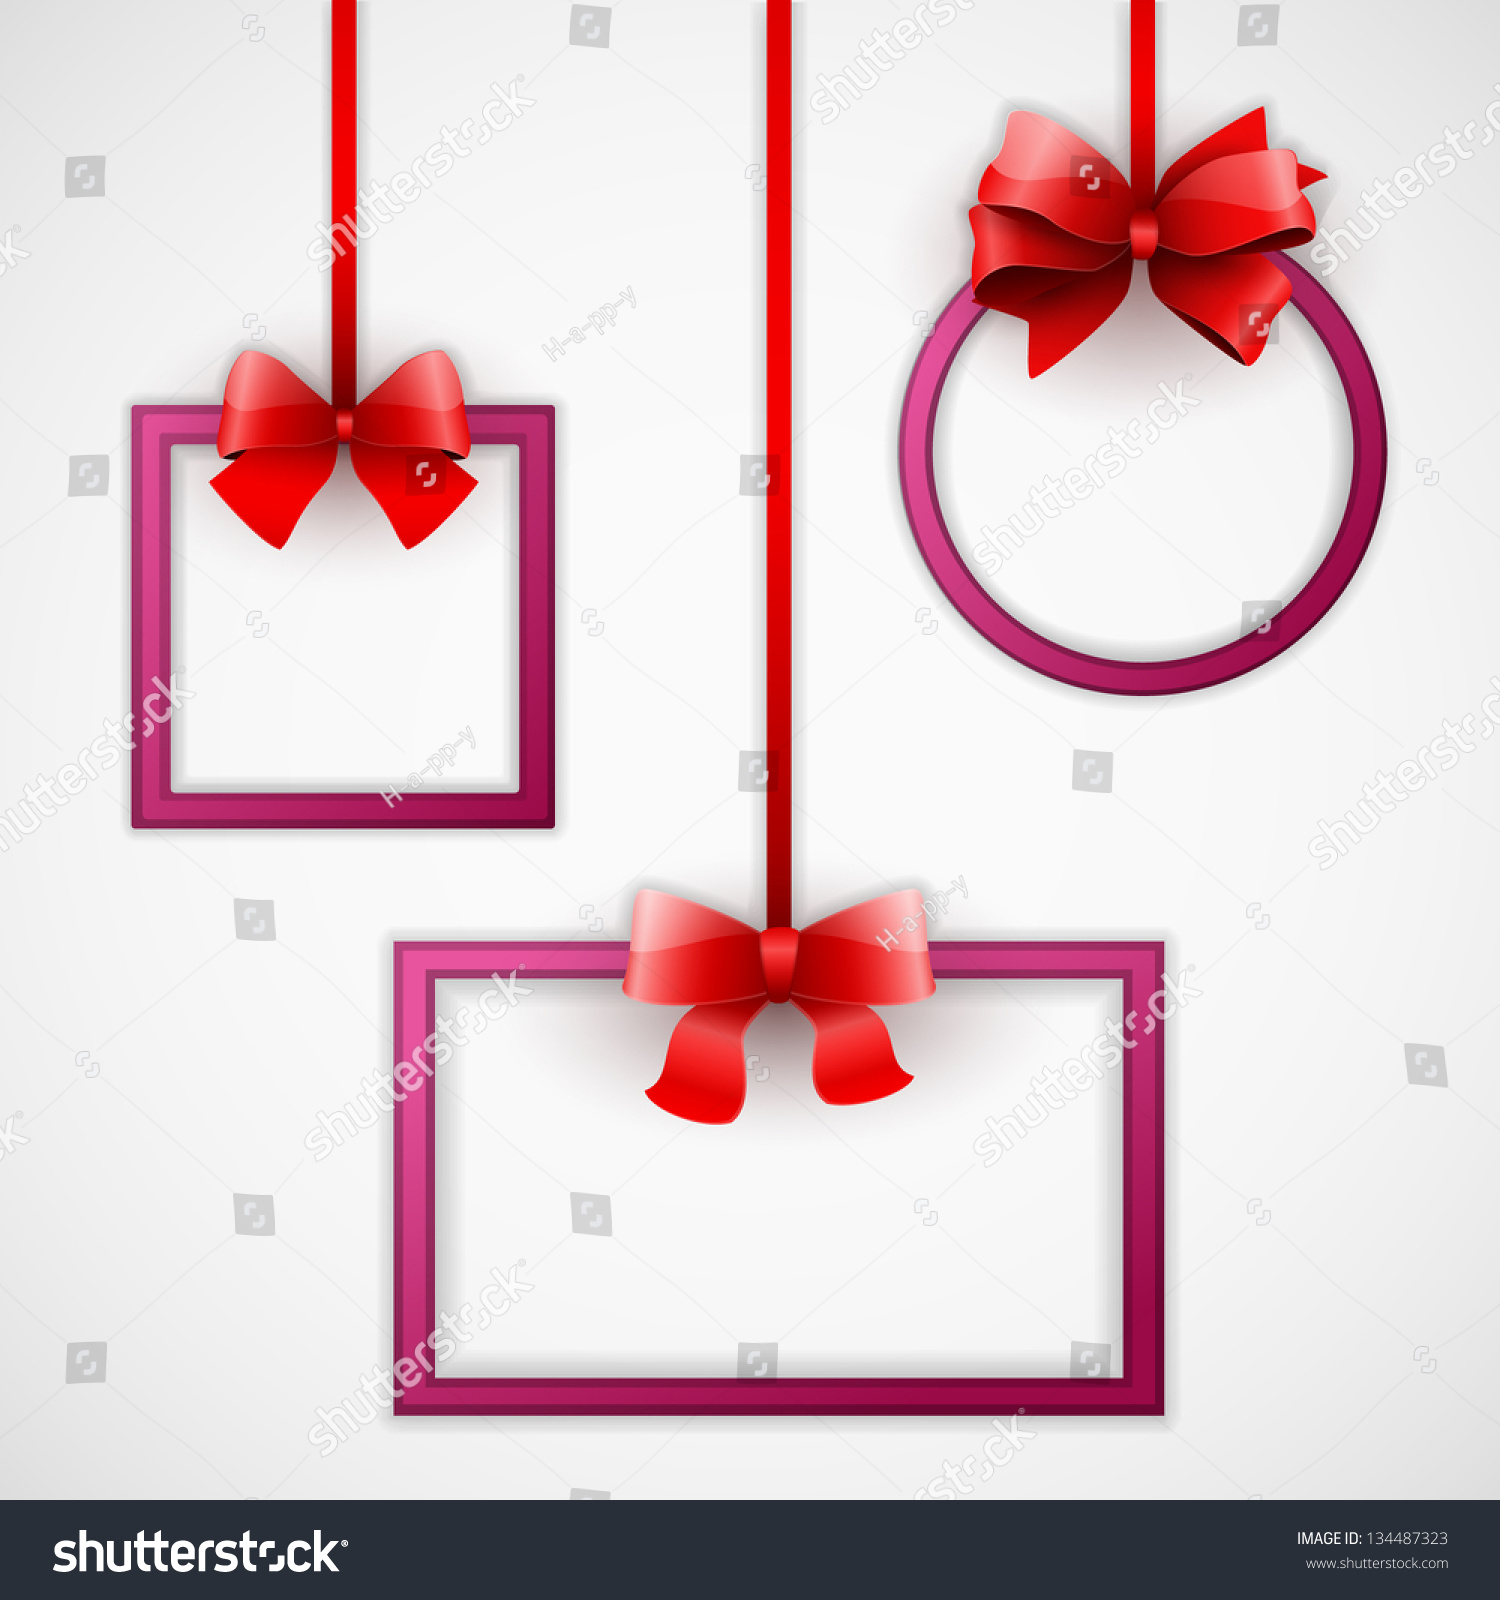 Famous Picture Frames With Bows Gift - Ideas de Marcos - lamegapromo ...